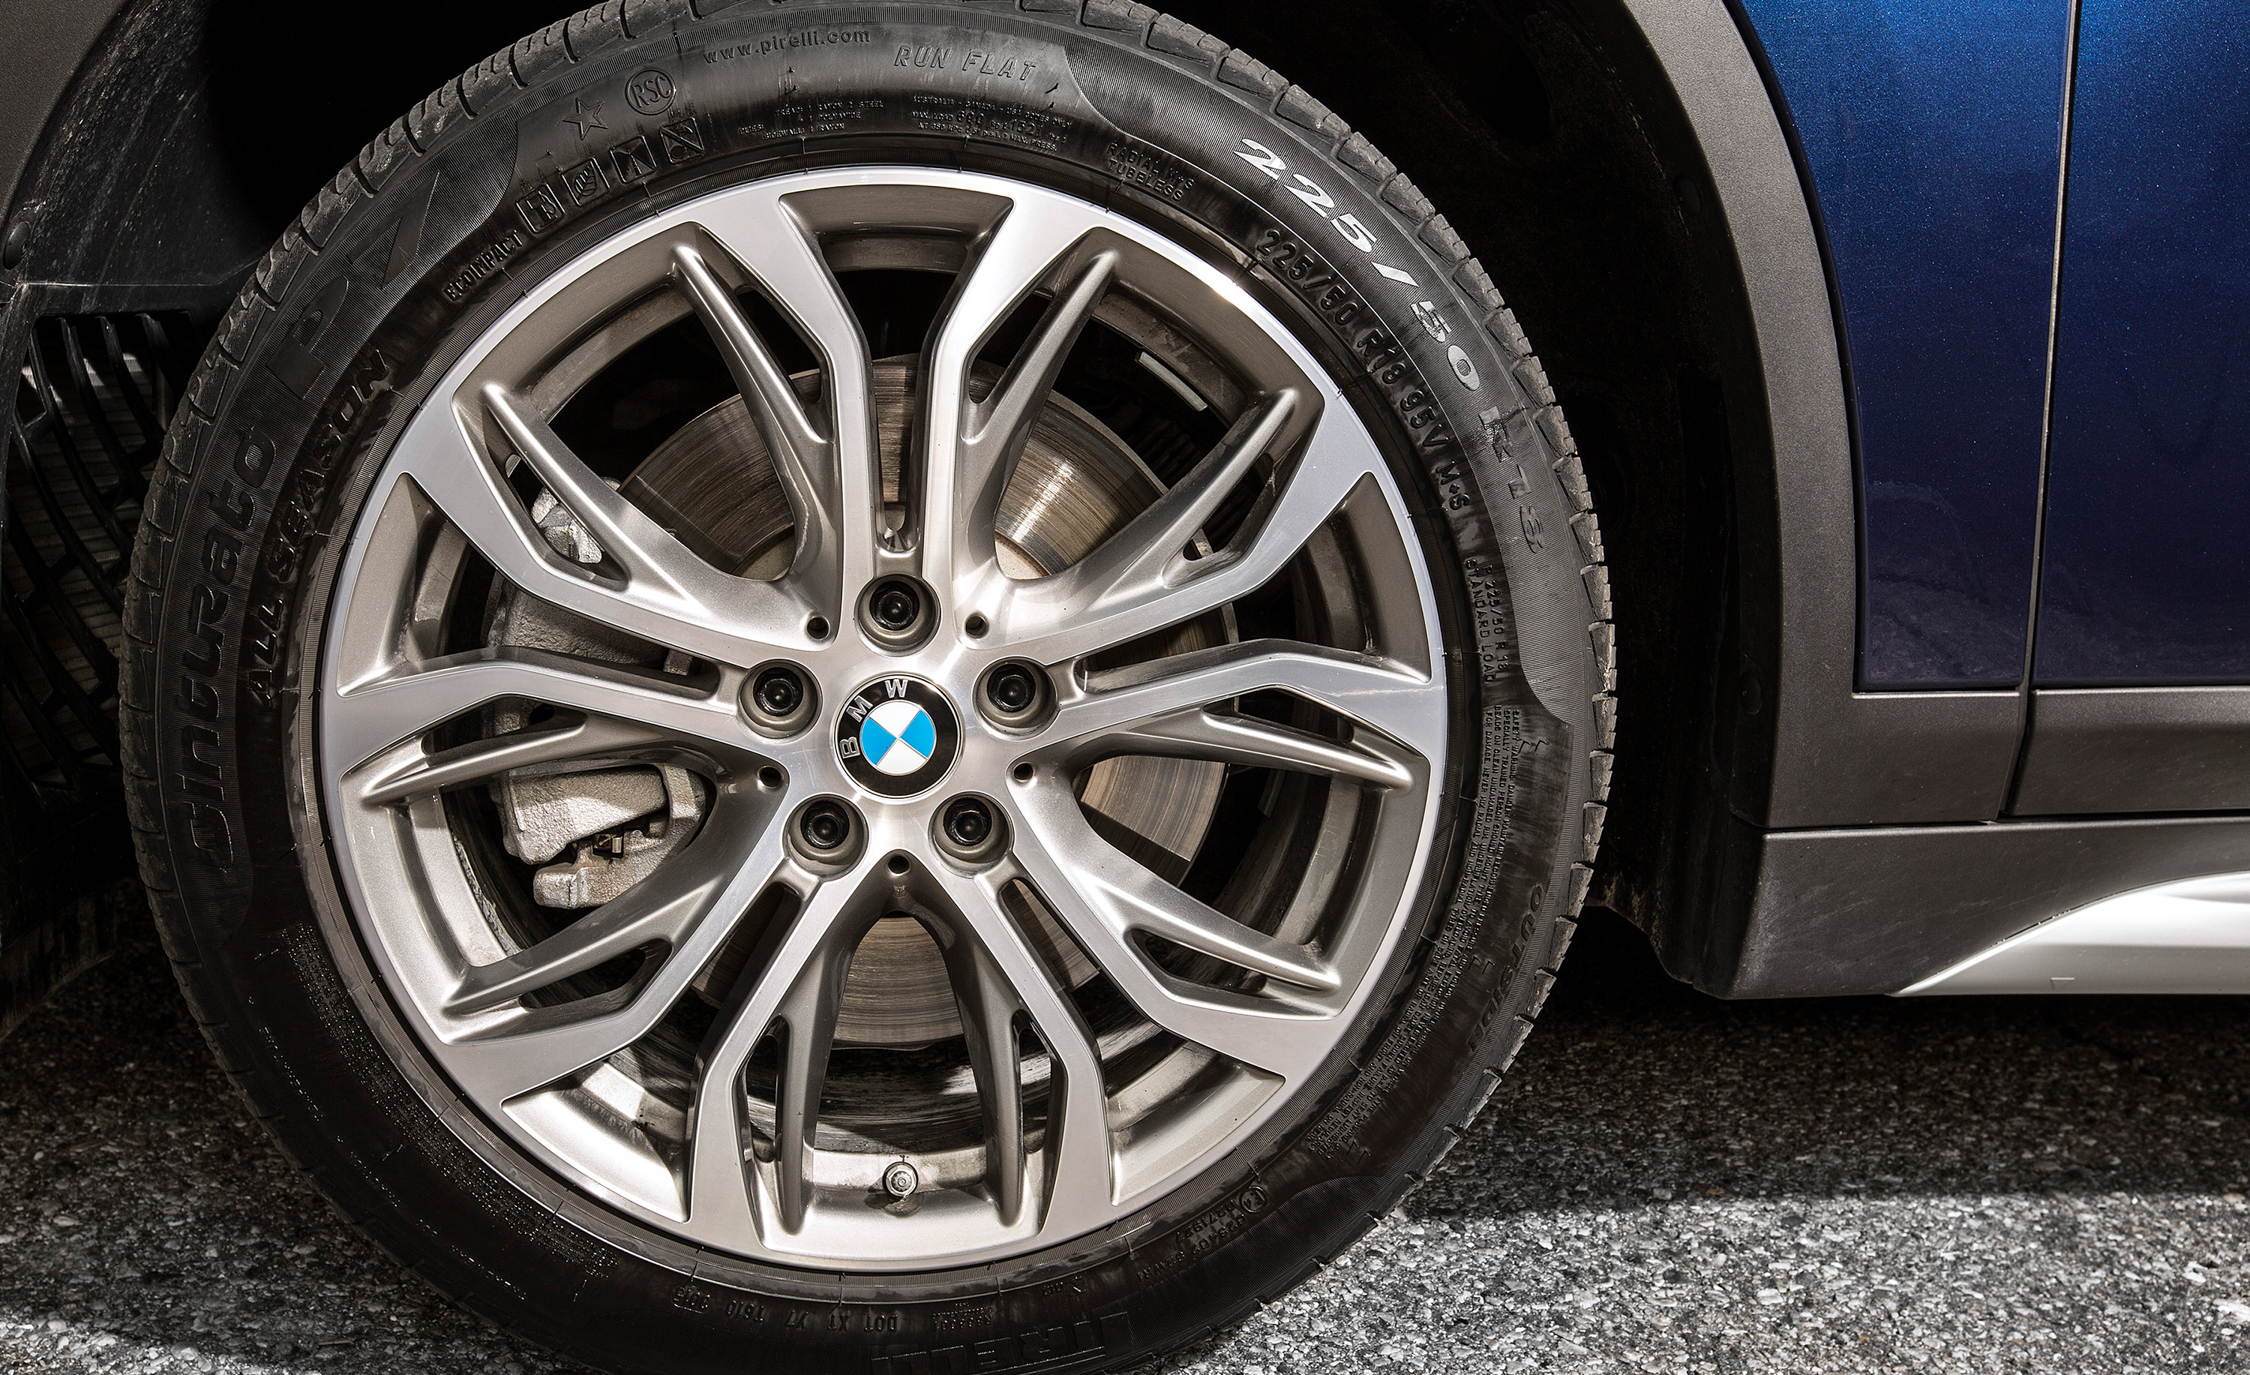 2016 BMW X1 XDrive28i Blue Metallic Exterior View Wheel (Photo 31 of 36)